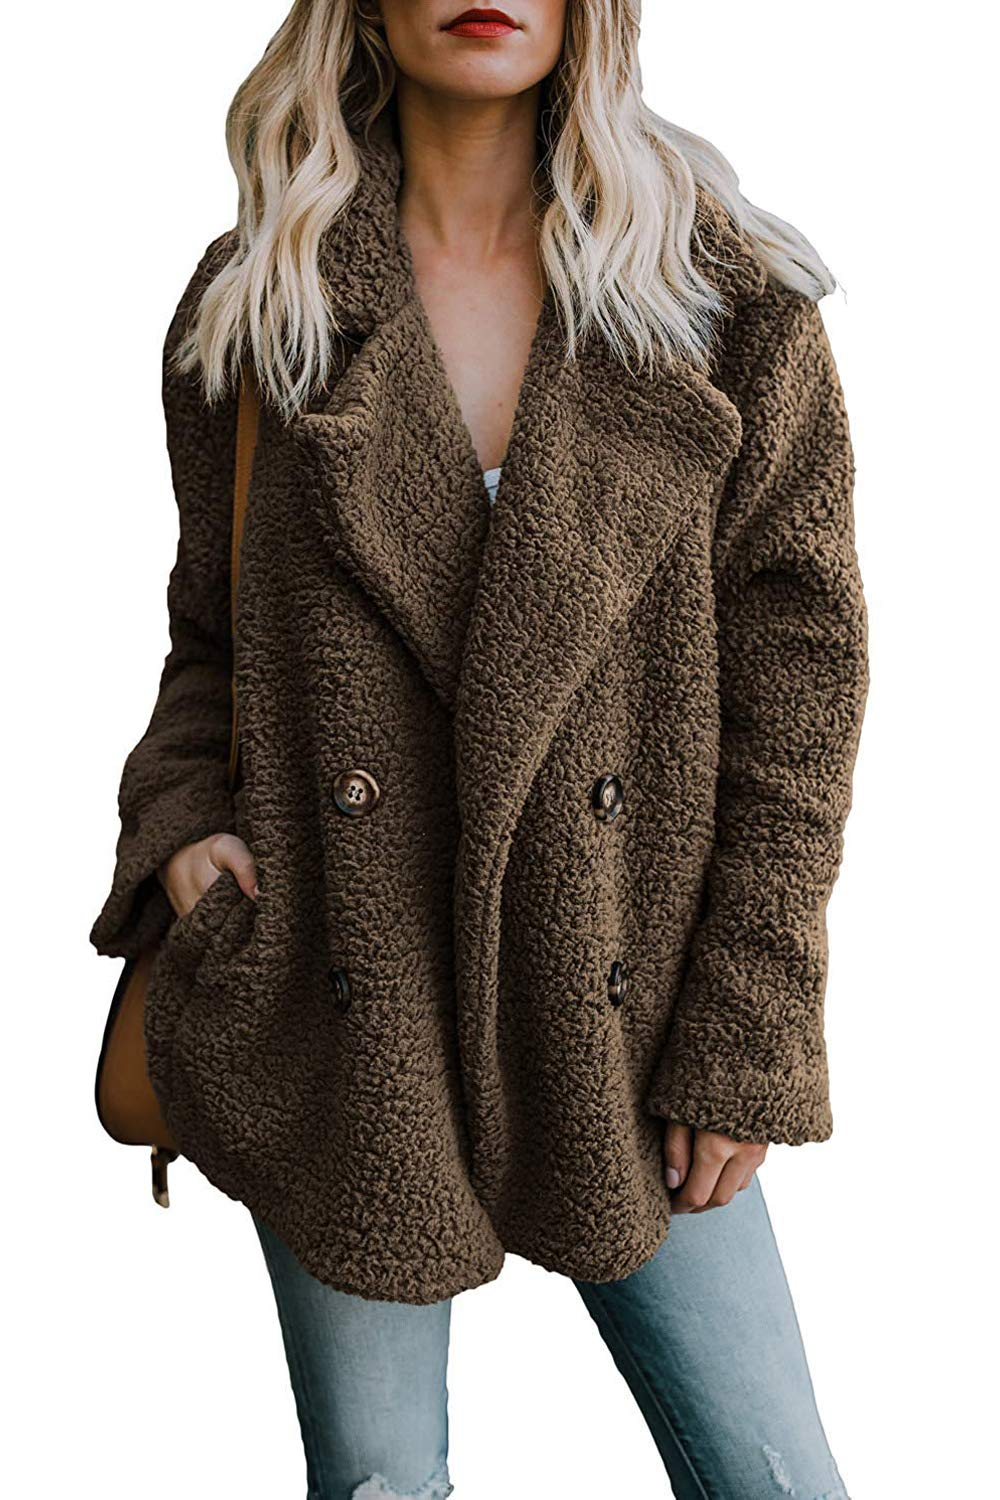 ZESICA Women's Casual Oversized Coat Long Sleeve Fuzzy Fleece Button Down Pullover Outwear with Pockets